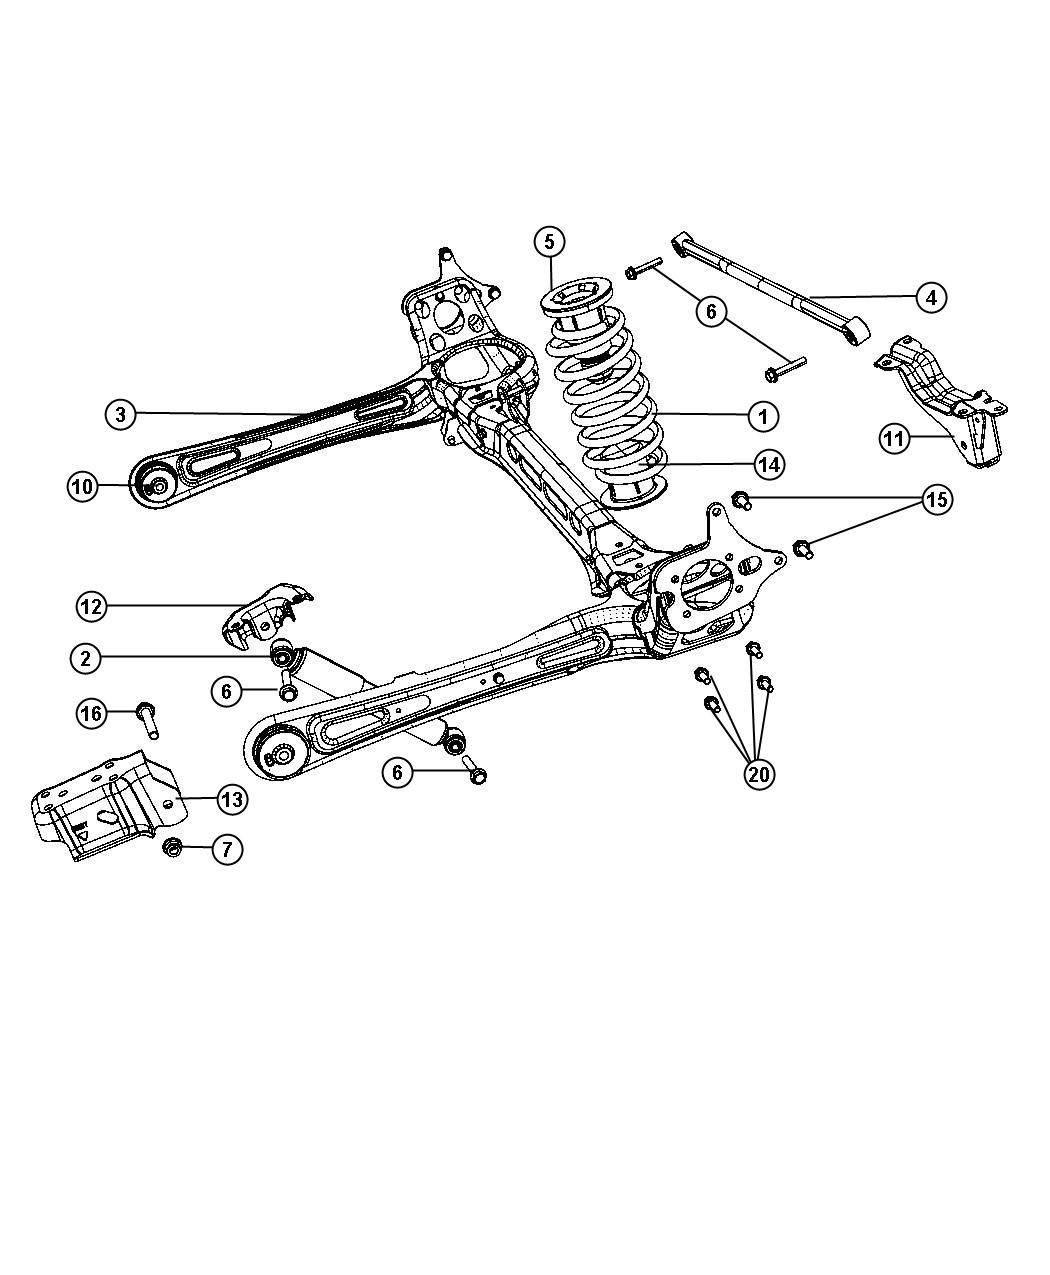 Chrysler Town & Country Shock absorber kit. Suspension